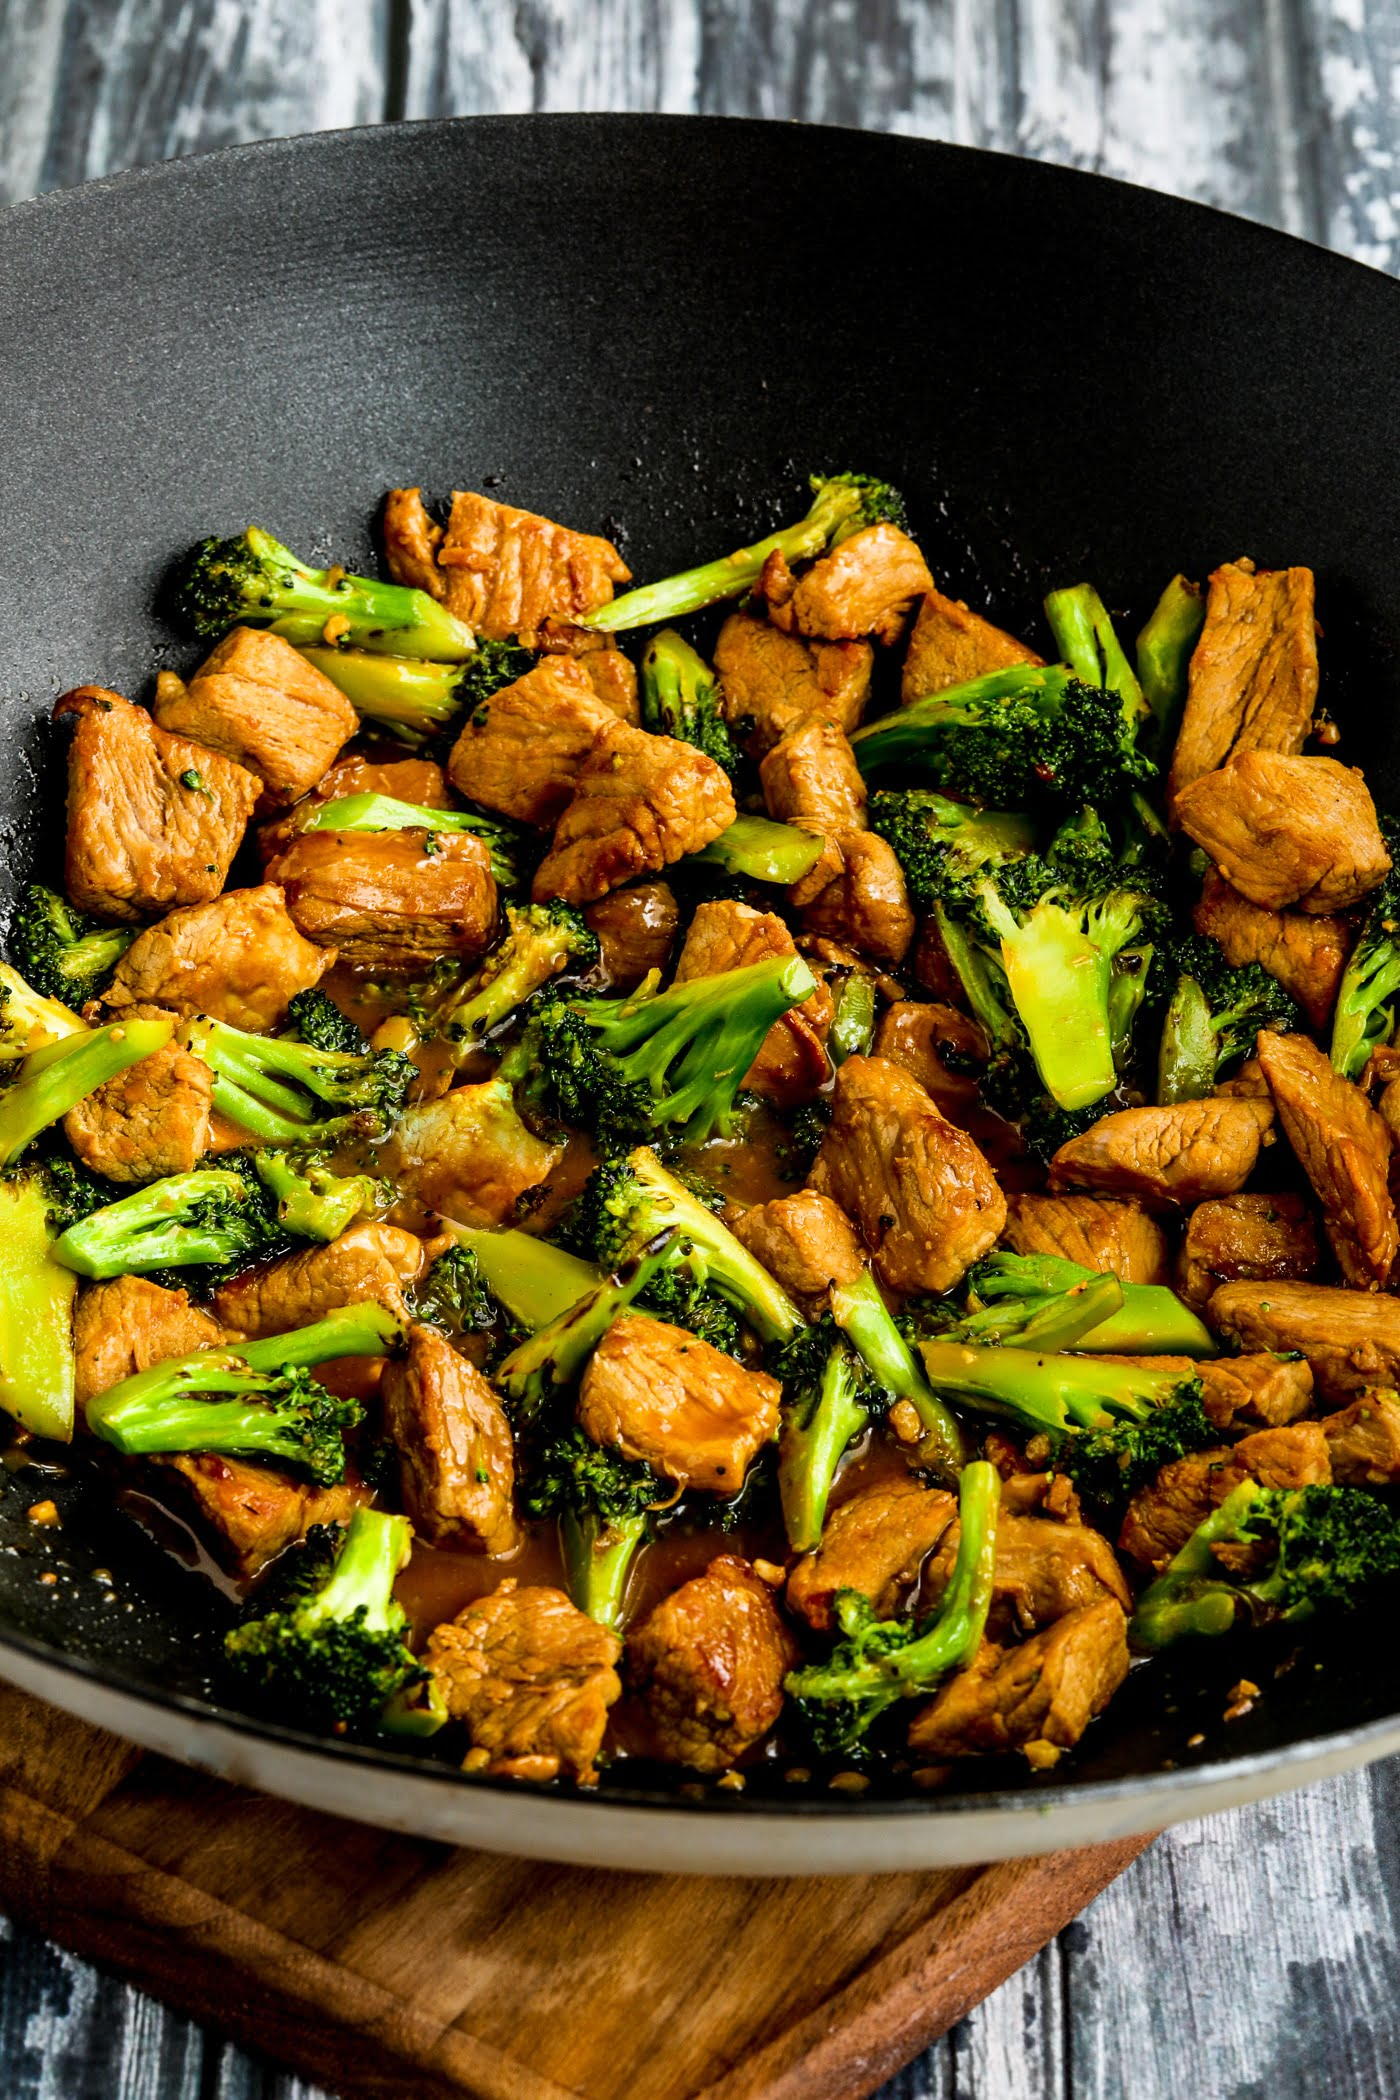 Pork and Broccoli Stir Fry with Ginger finished dish in wok